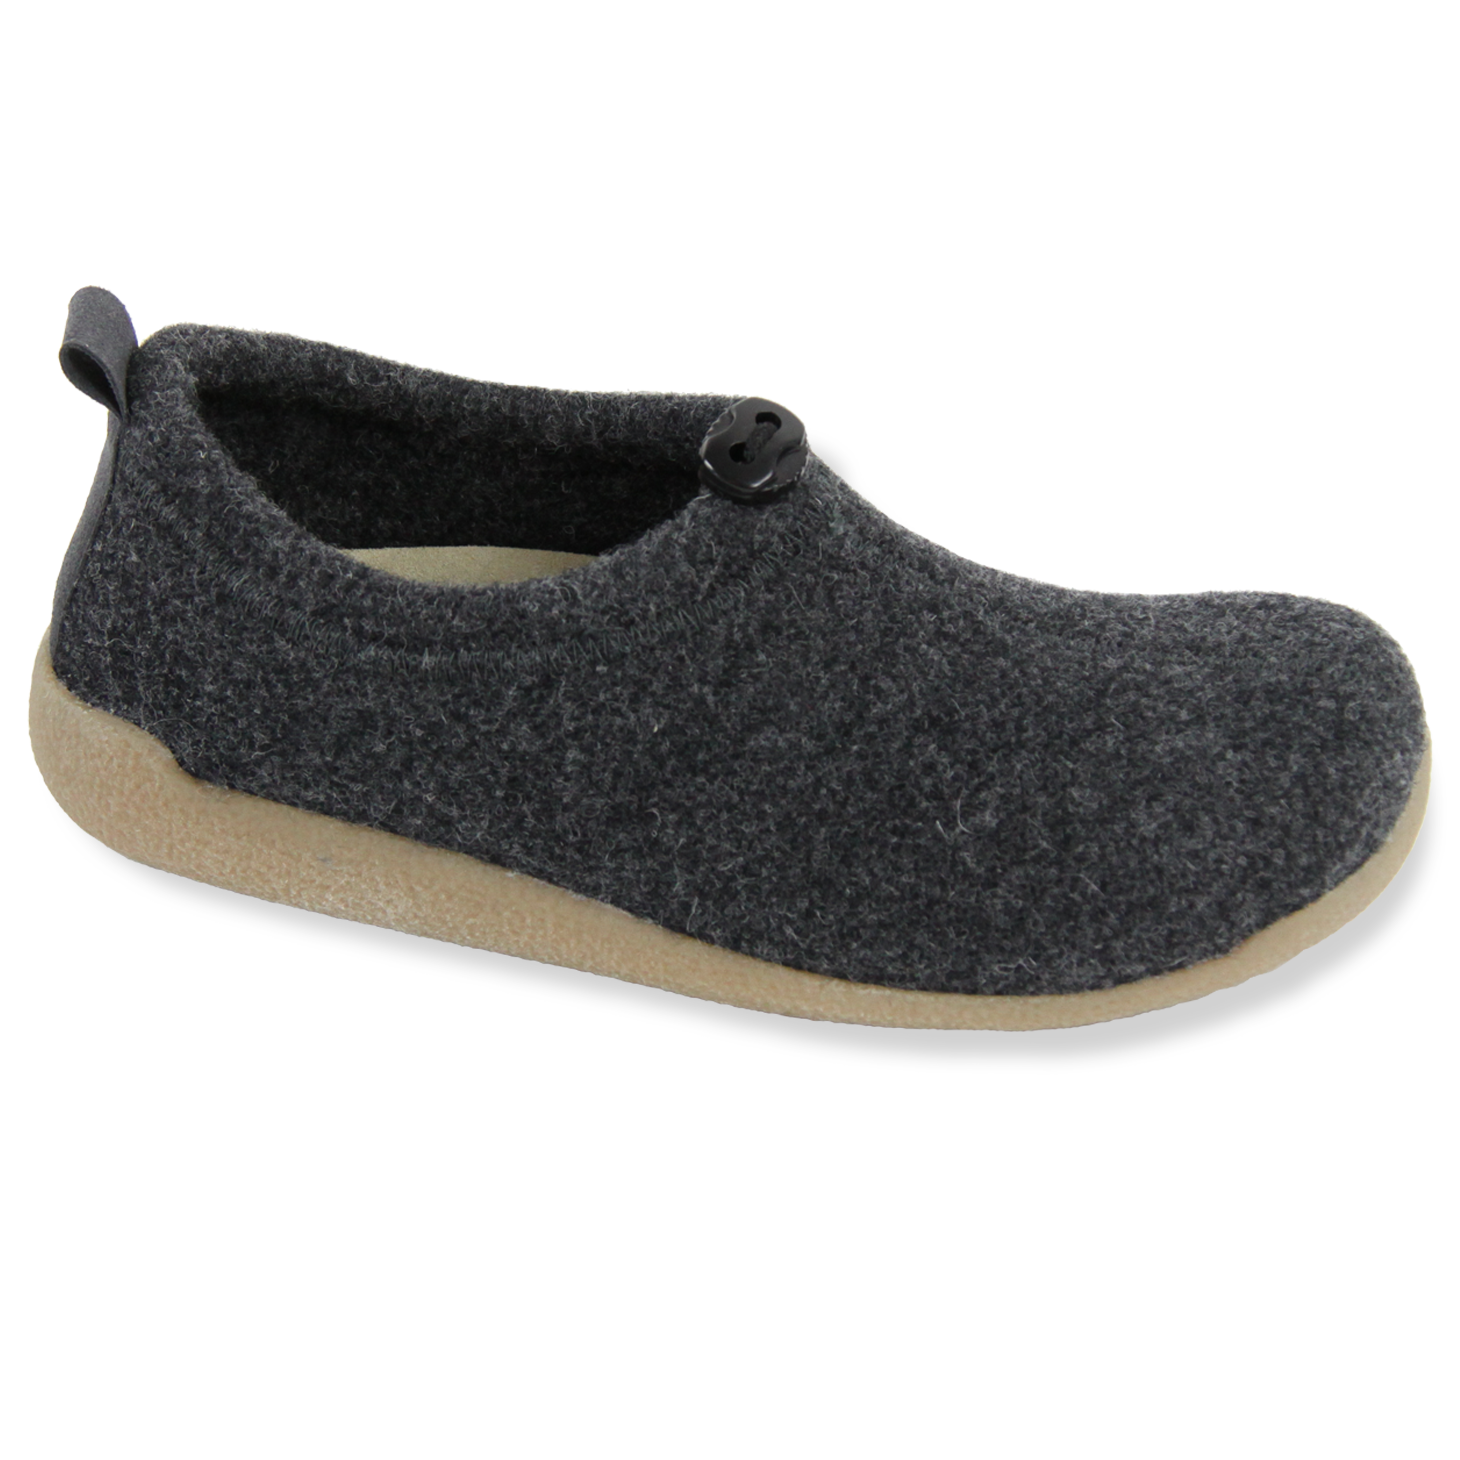 Sanita Lodge Shoe Unisex in Charcoal Slipper